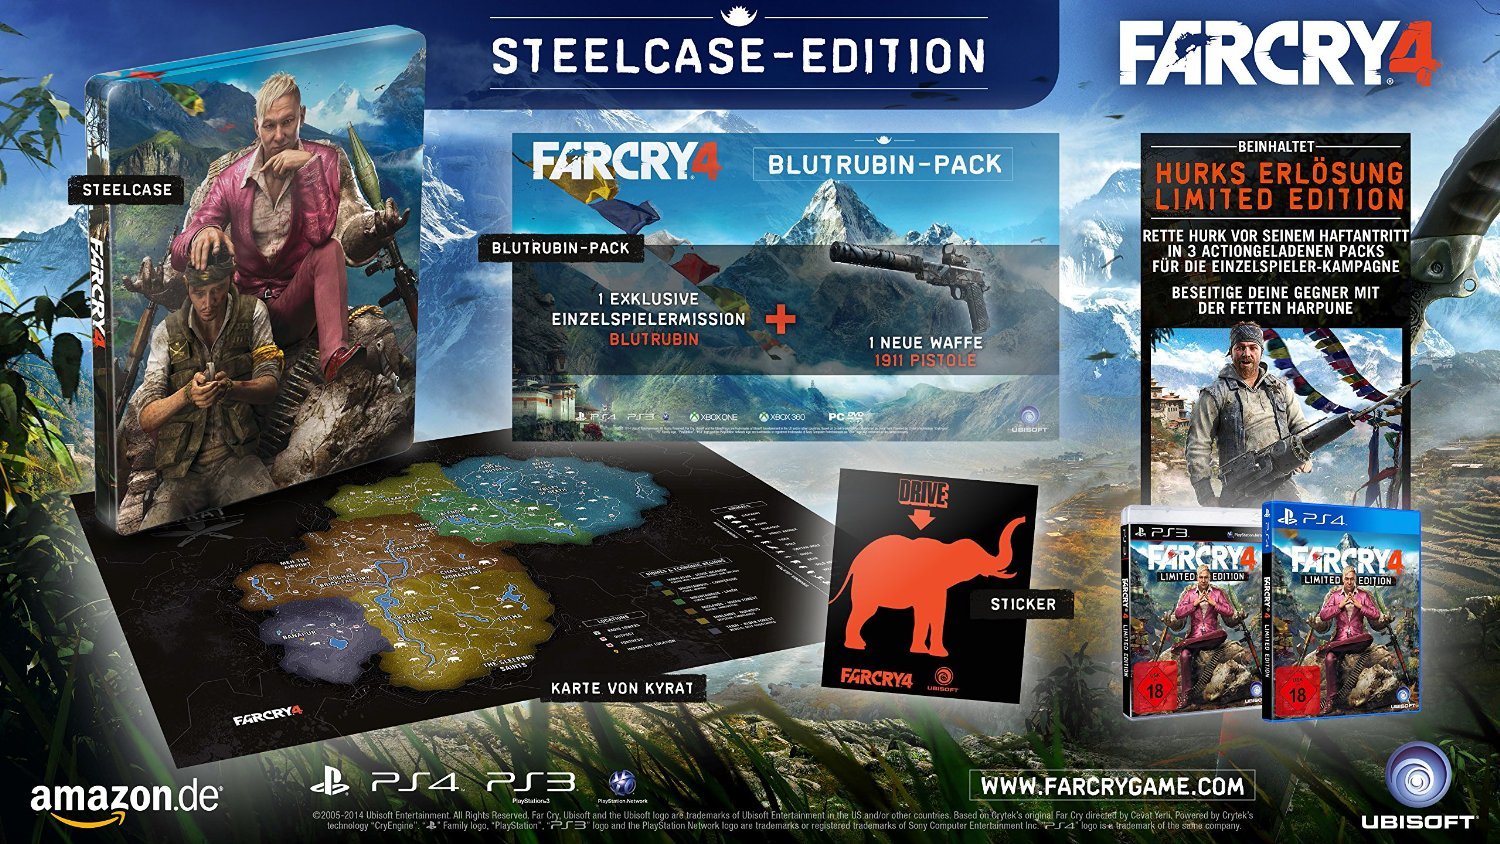 Far Cry 4 Steelcase Edition ab sofort bei Amazon